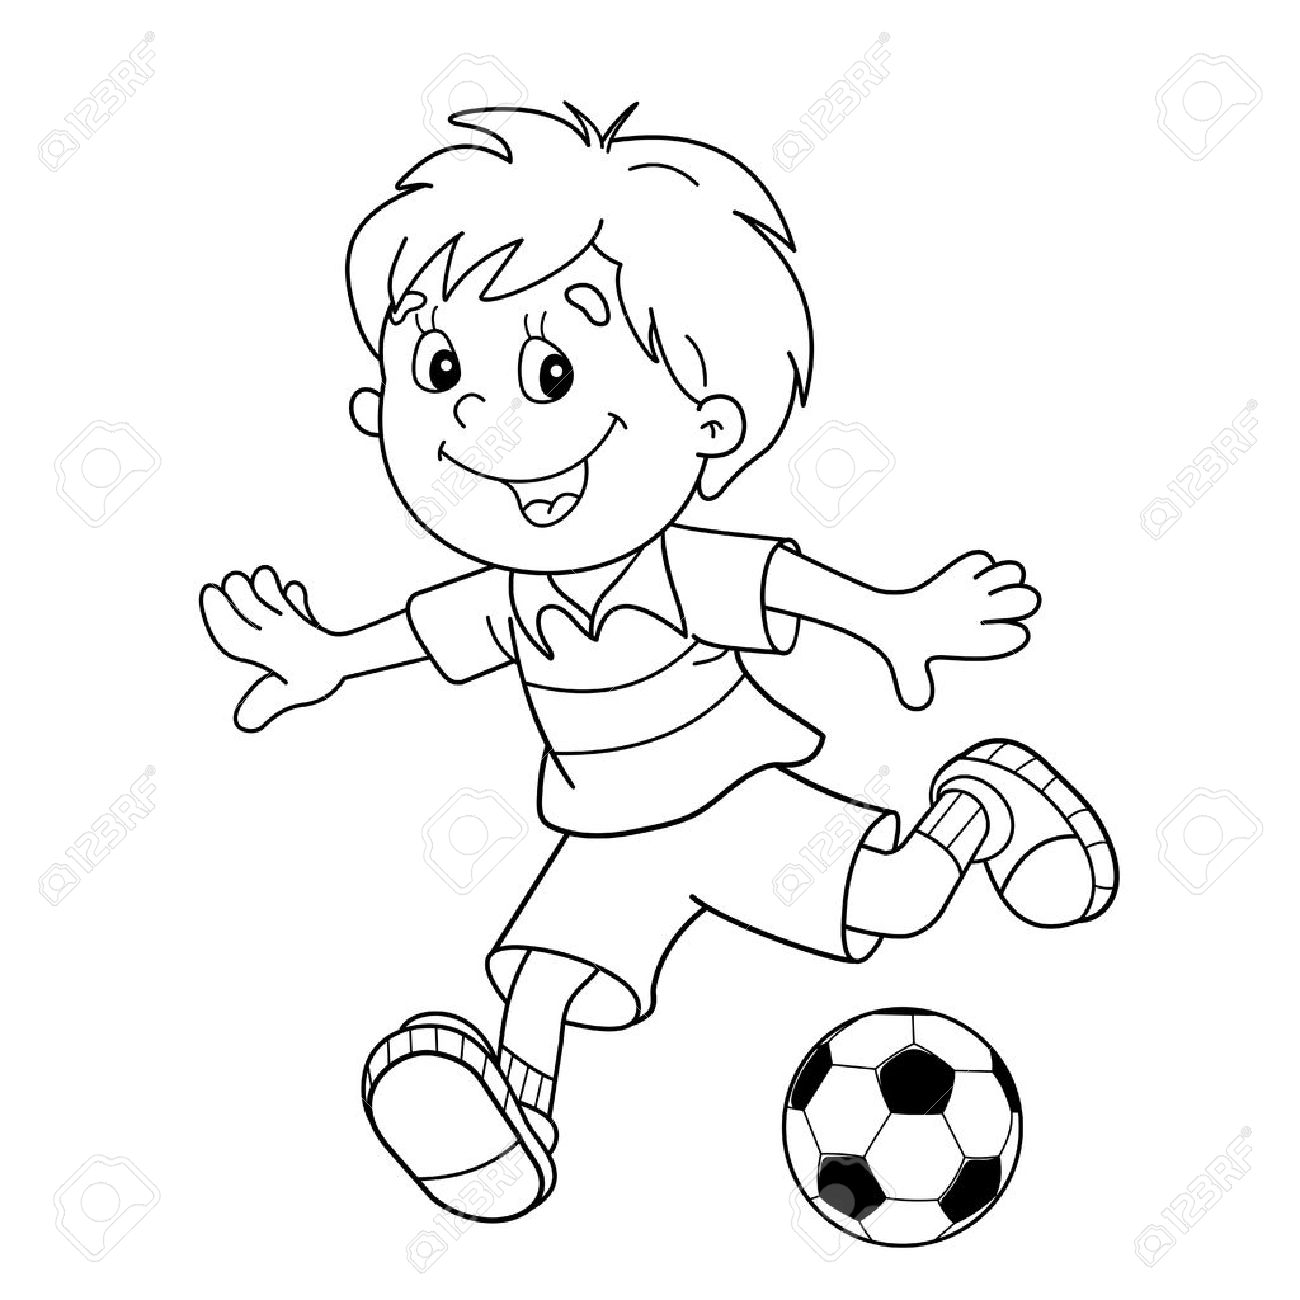 Football Drawing For Kids at GetDrawings.com   Free for personal use ...